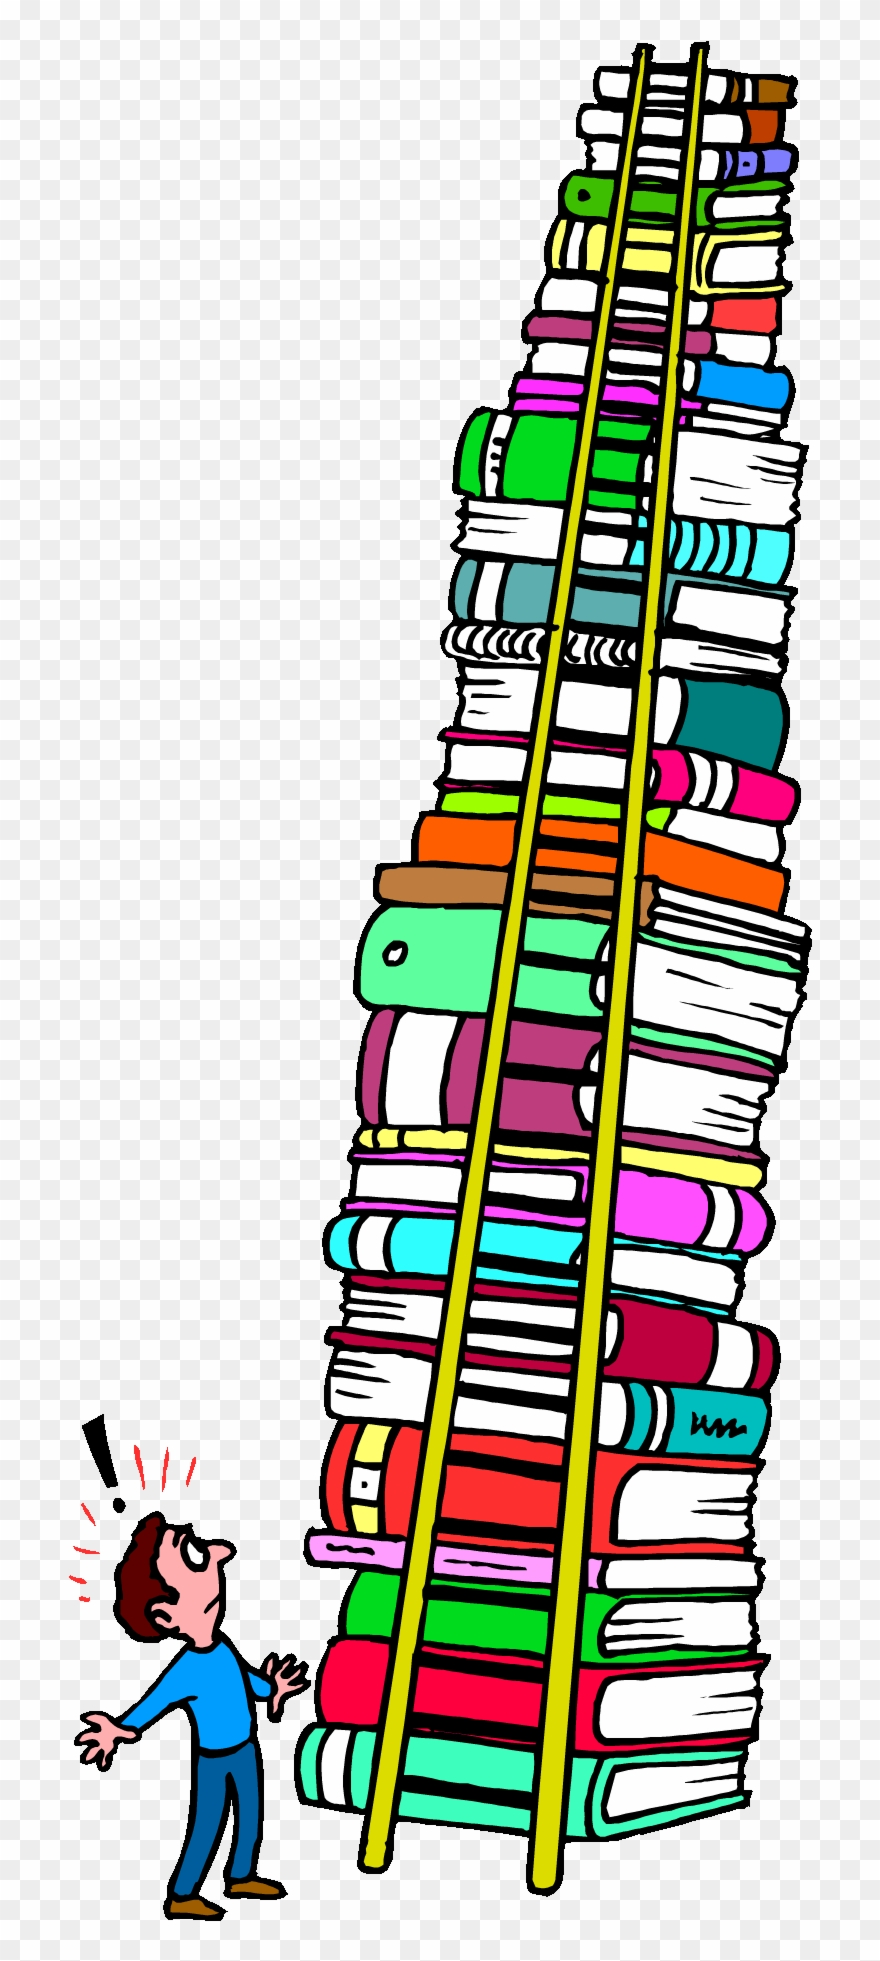 Tall Stack Of Books Clipart Download 9 Pinclipart Png Clipartix In 2020 Clip Art Stack Of Books Emoji Clipart